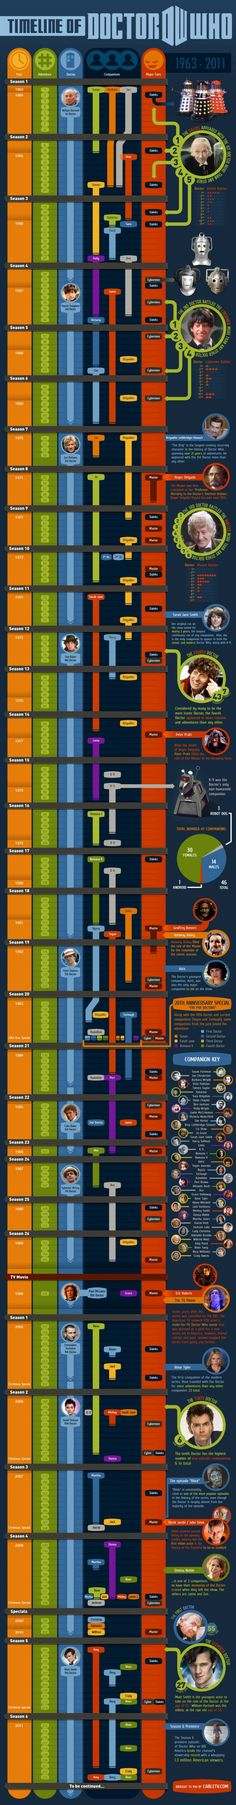 the-complete-timeline-of-doctor-who_502910f28f0db_w587.jpg (587×4492)